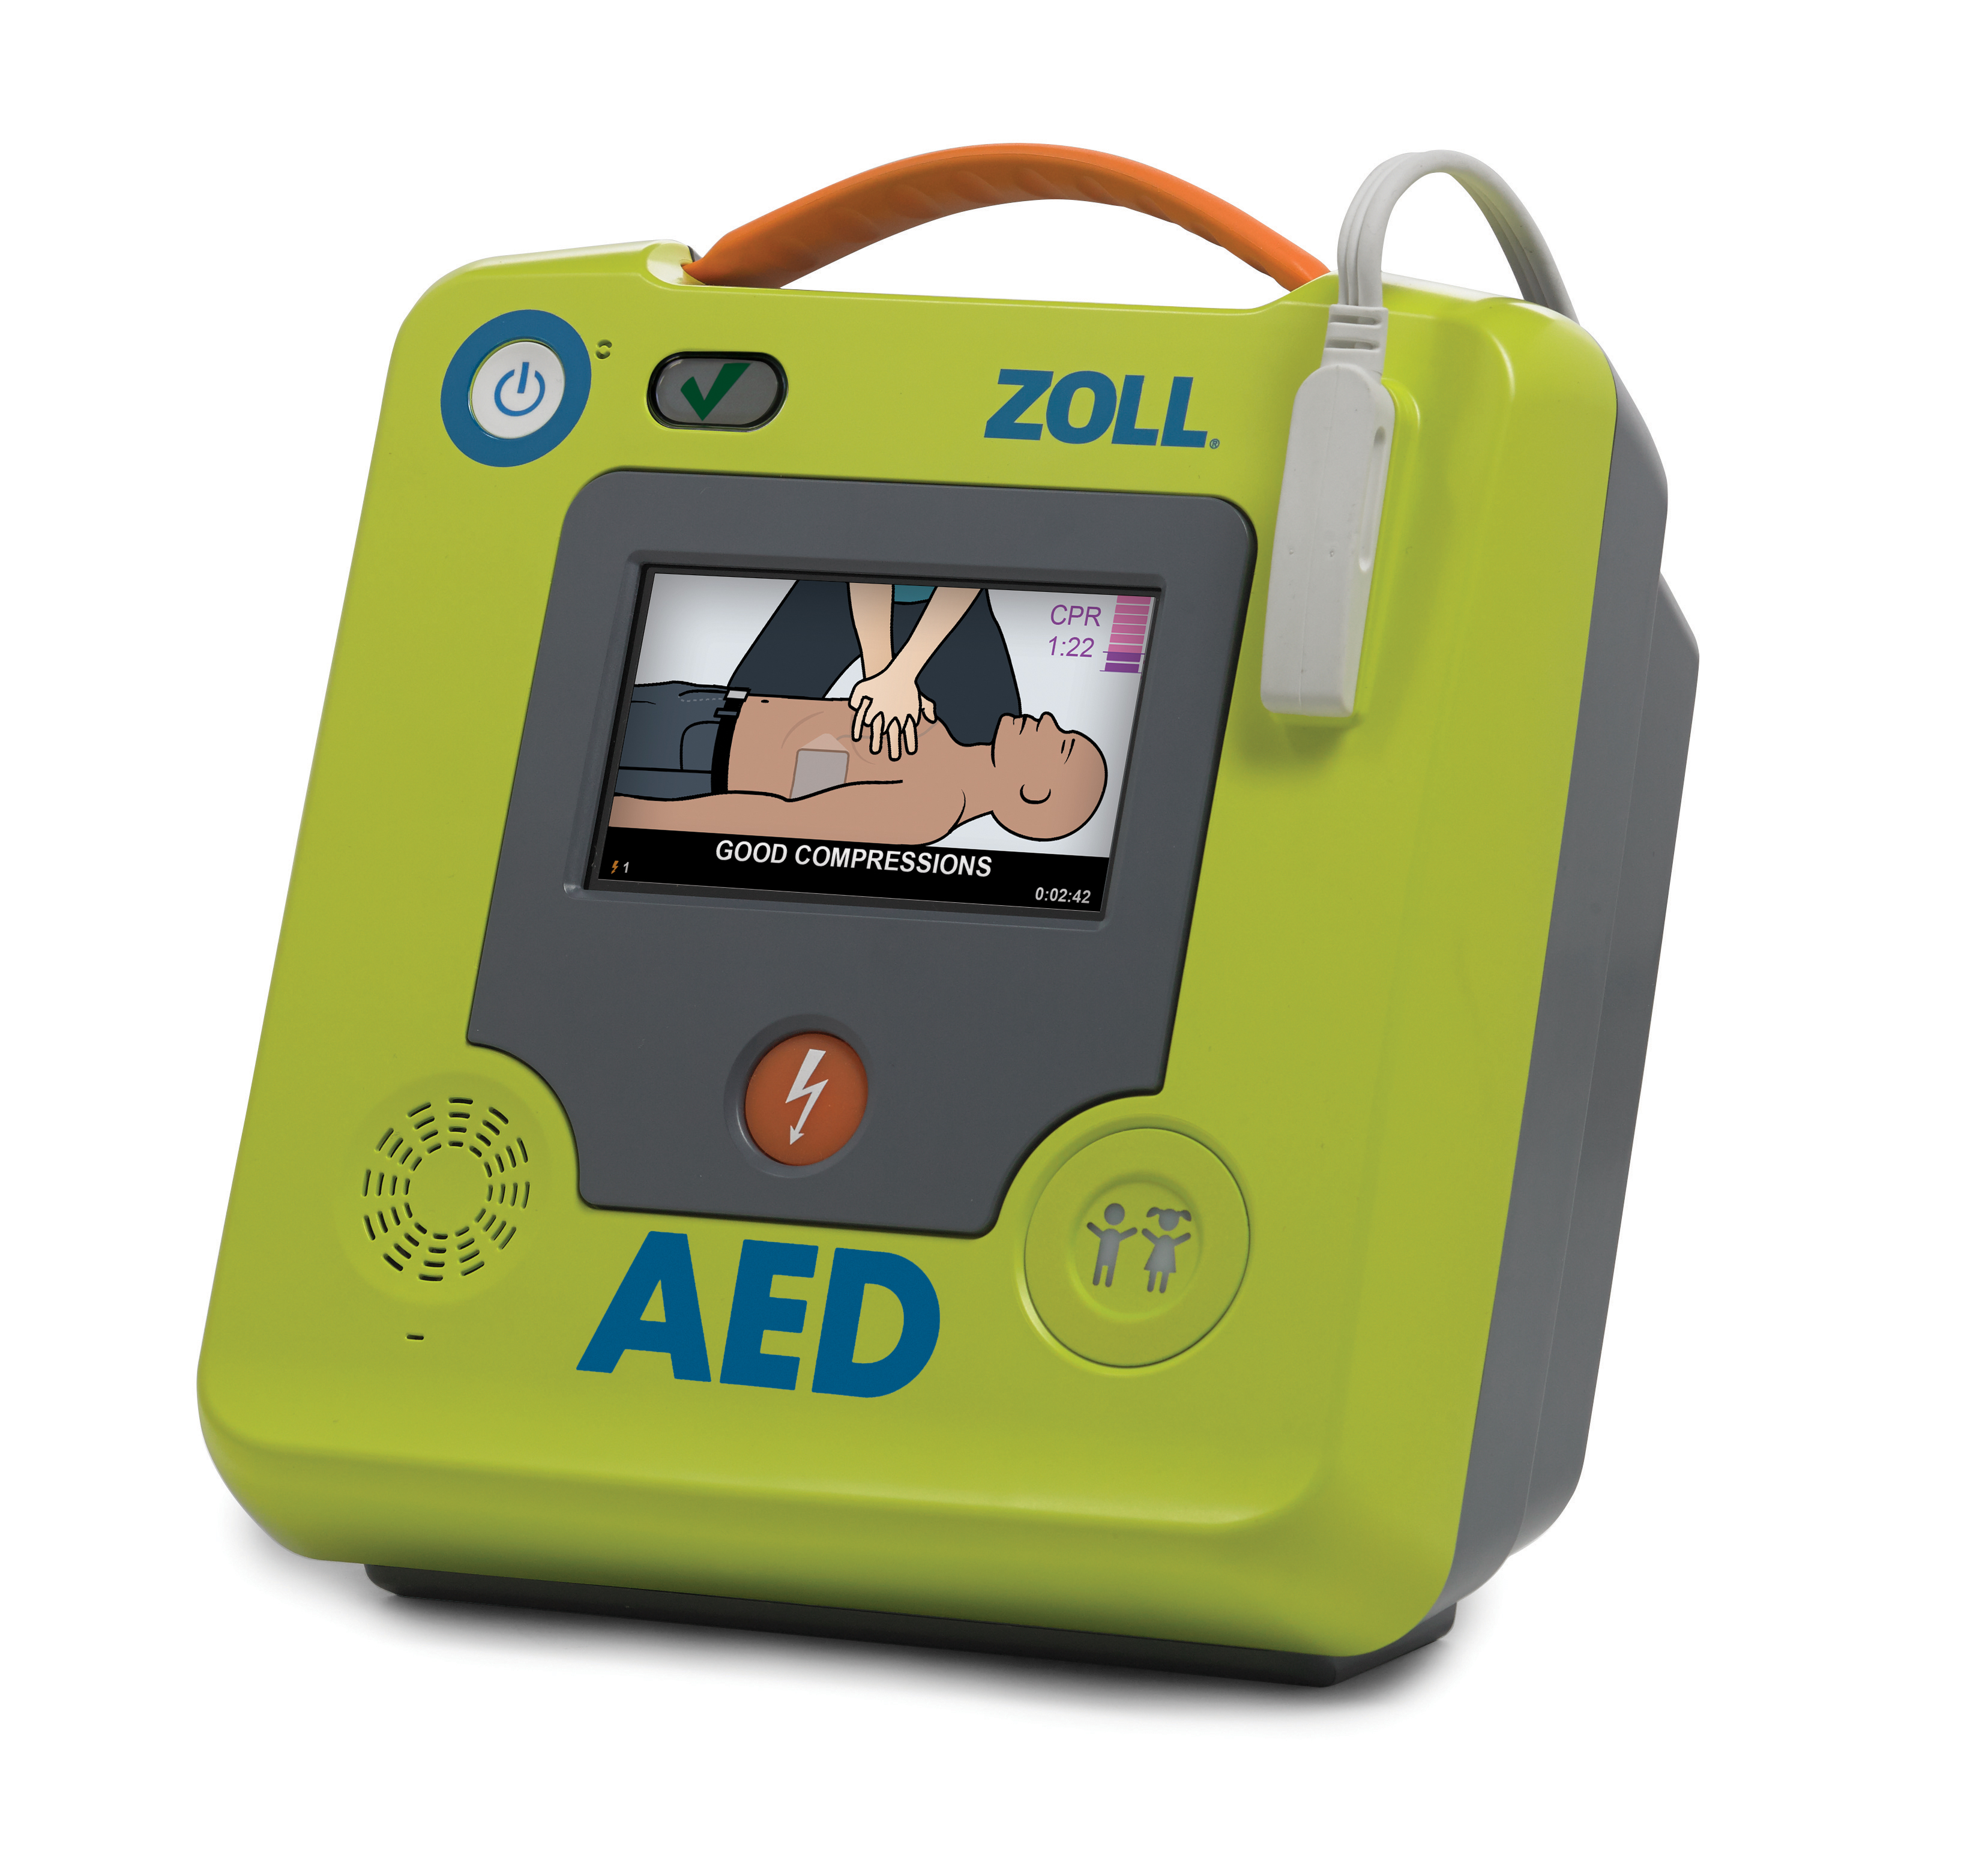 ZOLL AED 3 image